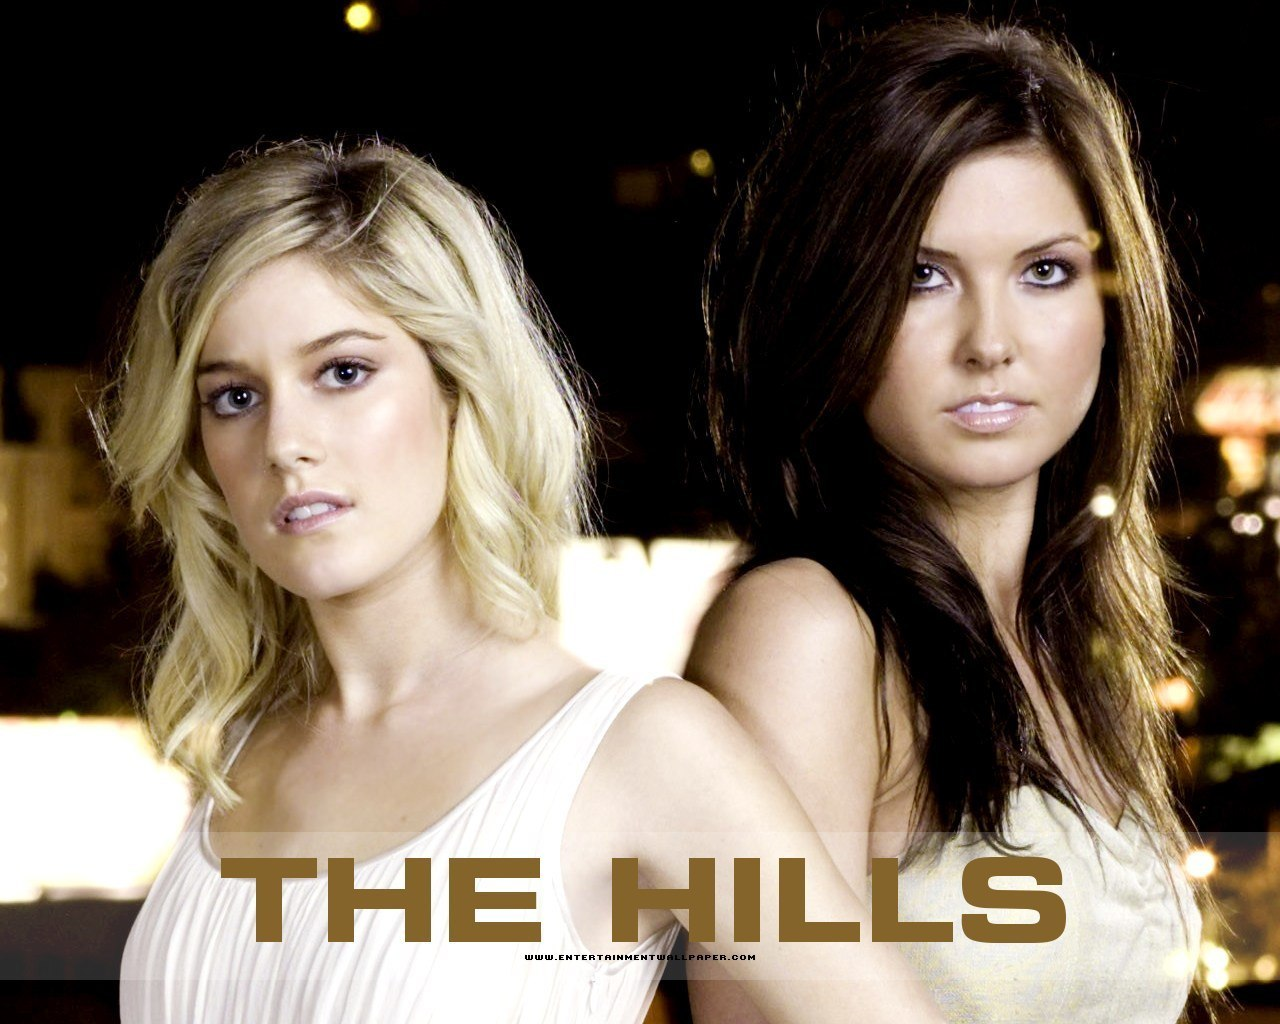 The Hills on mtv wallpaper